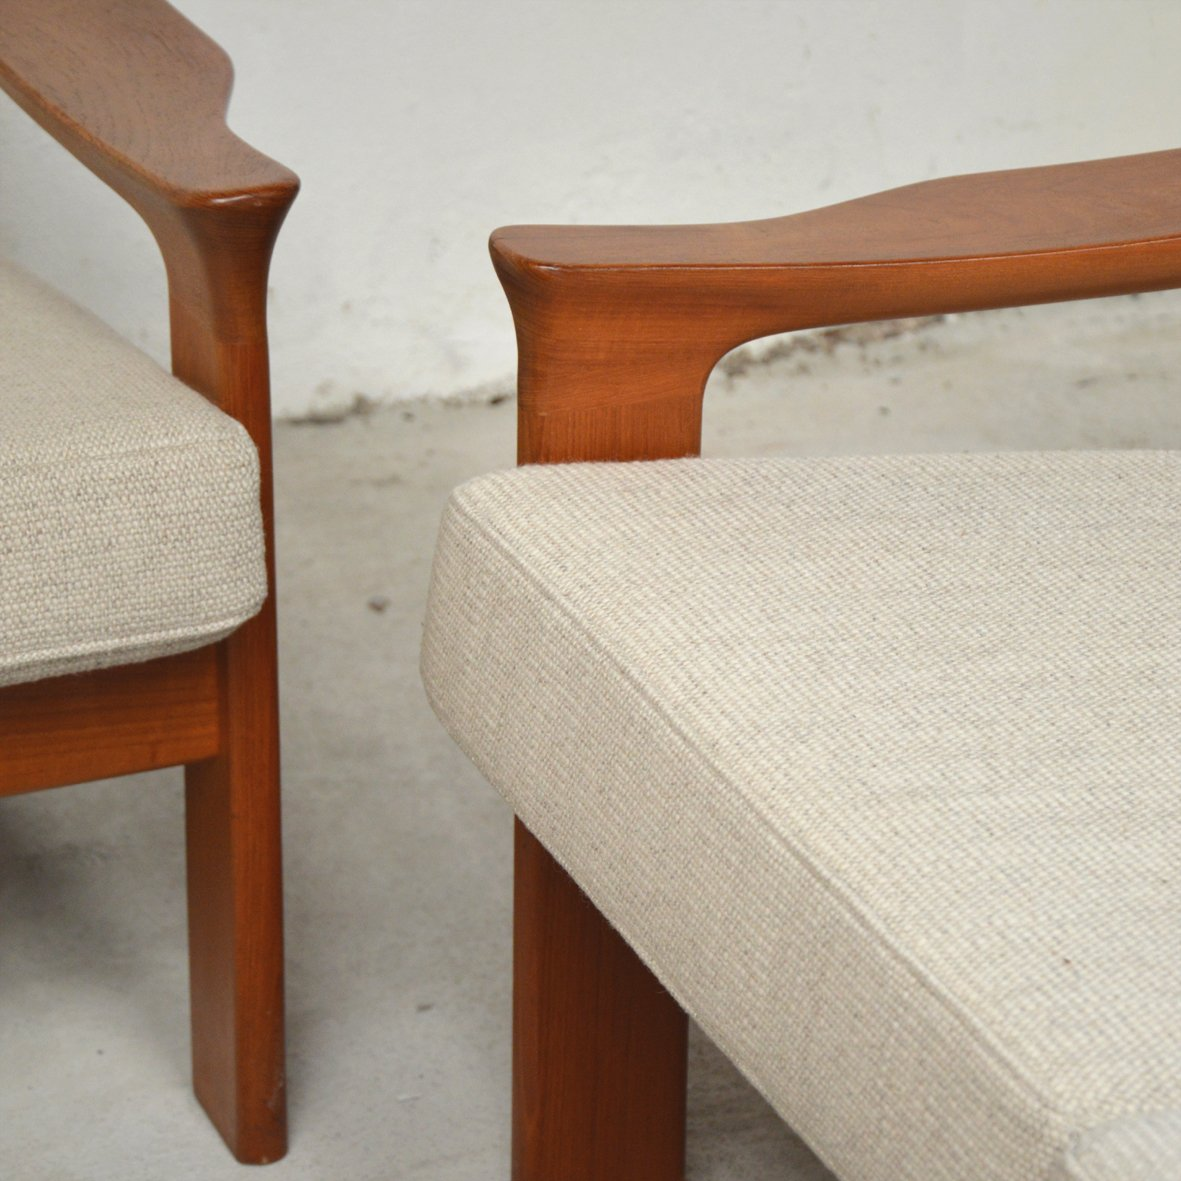 Living Room Set from Mikael Laursen, 1960s for sale at Pamono